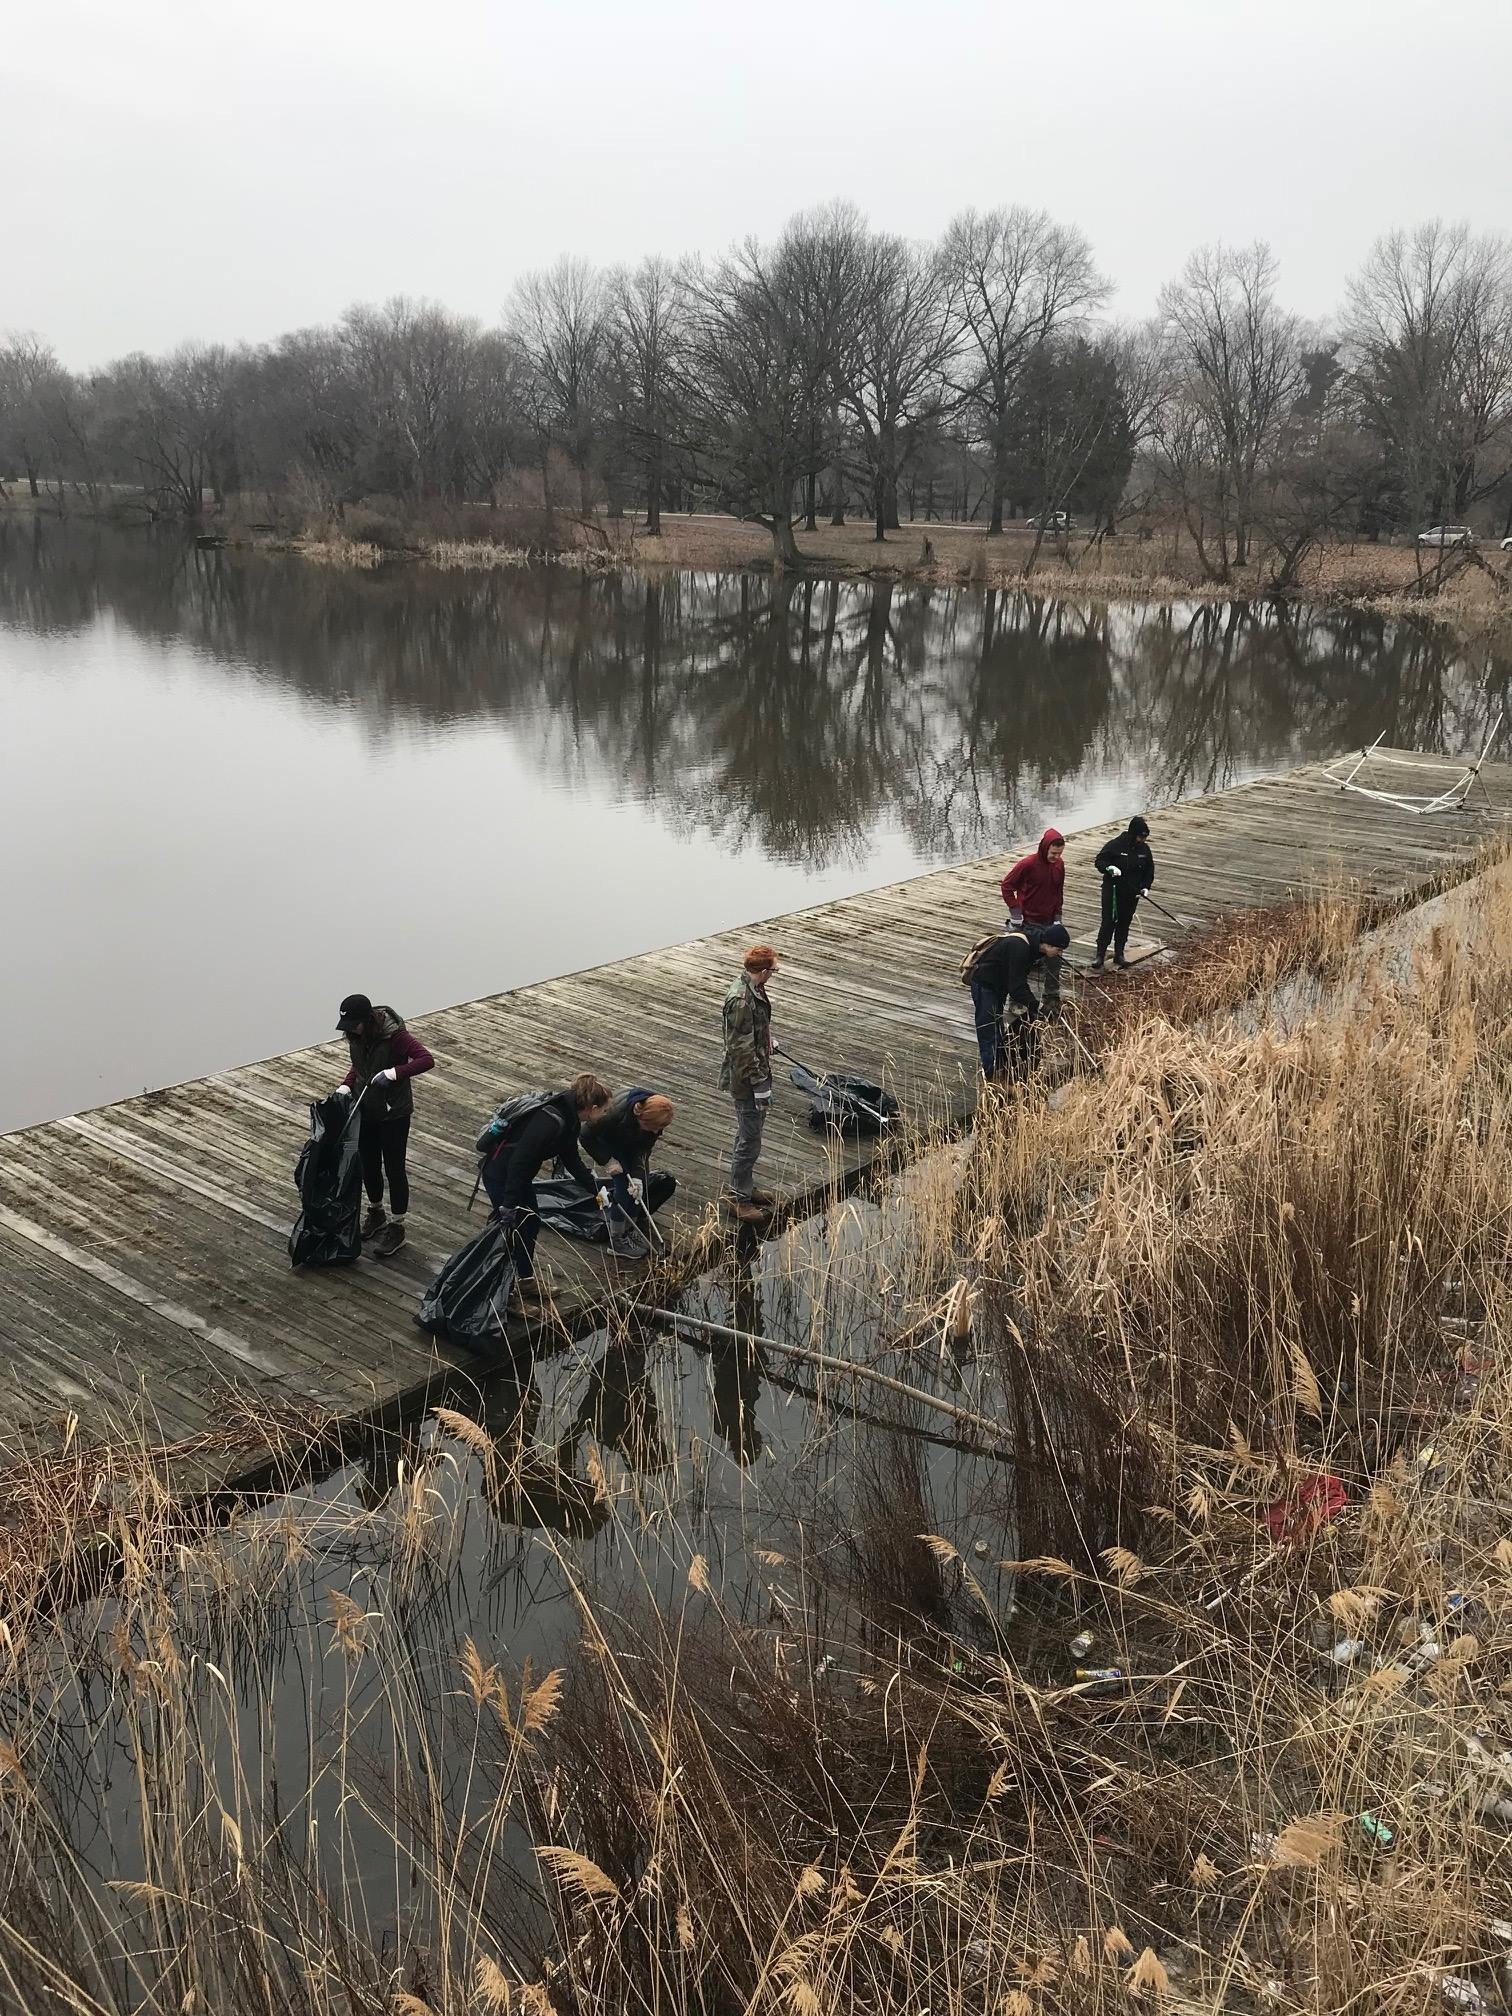 Volunteers clean up one of the lakes at FDR Park on a cold February day. (Photo credit: Friends of FDR Park/Facebook)